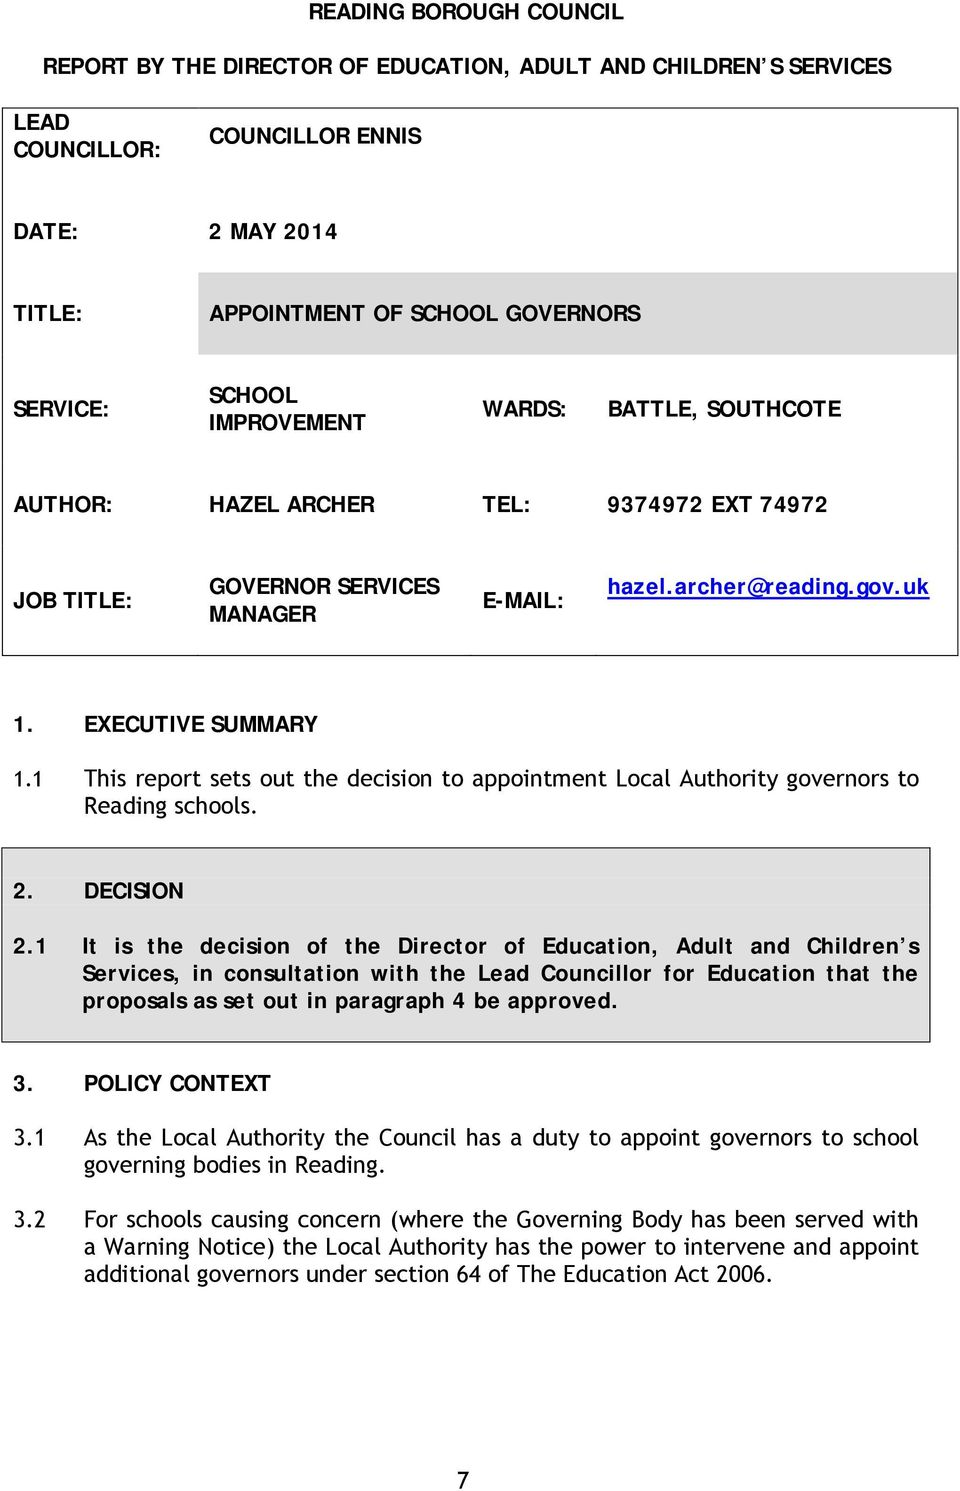 1 This report sets out the decision to appointment Local Authority governors to Reading schools. 2. DECISION 2.